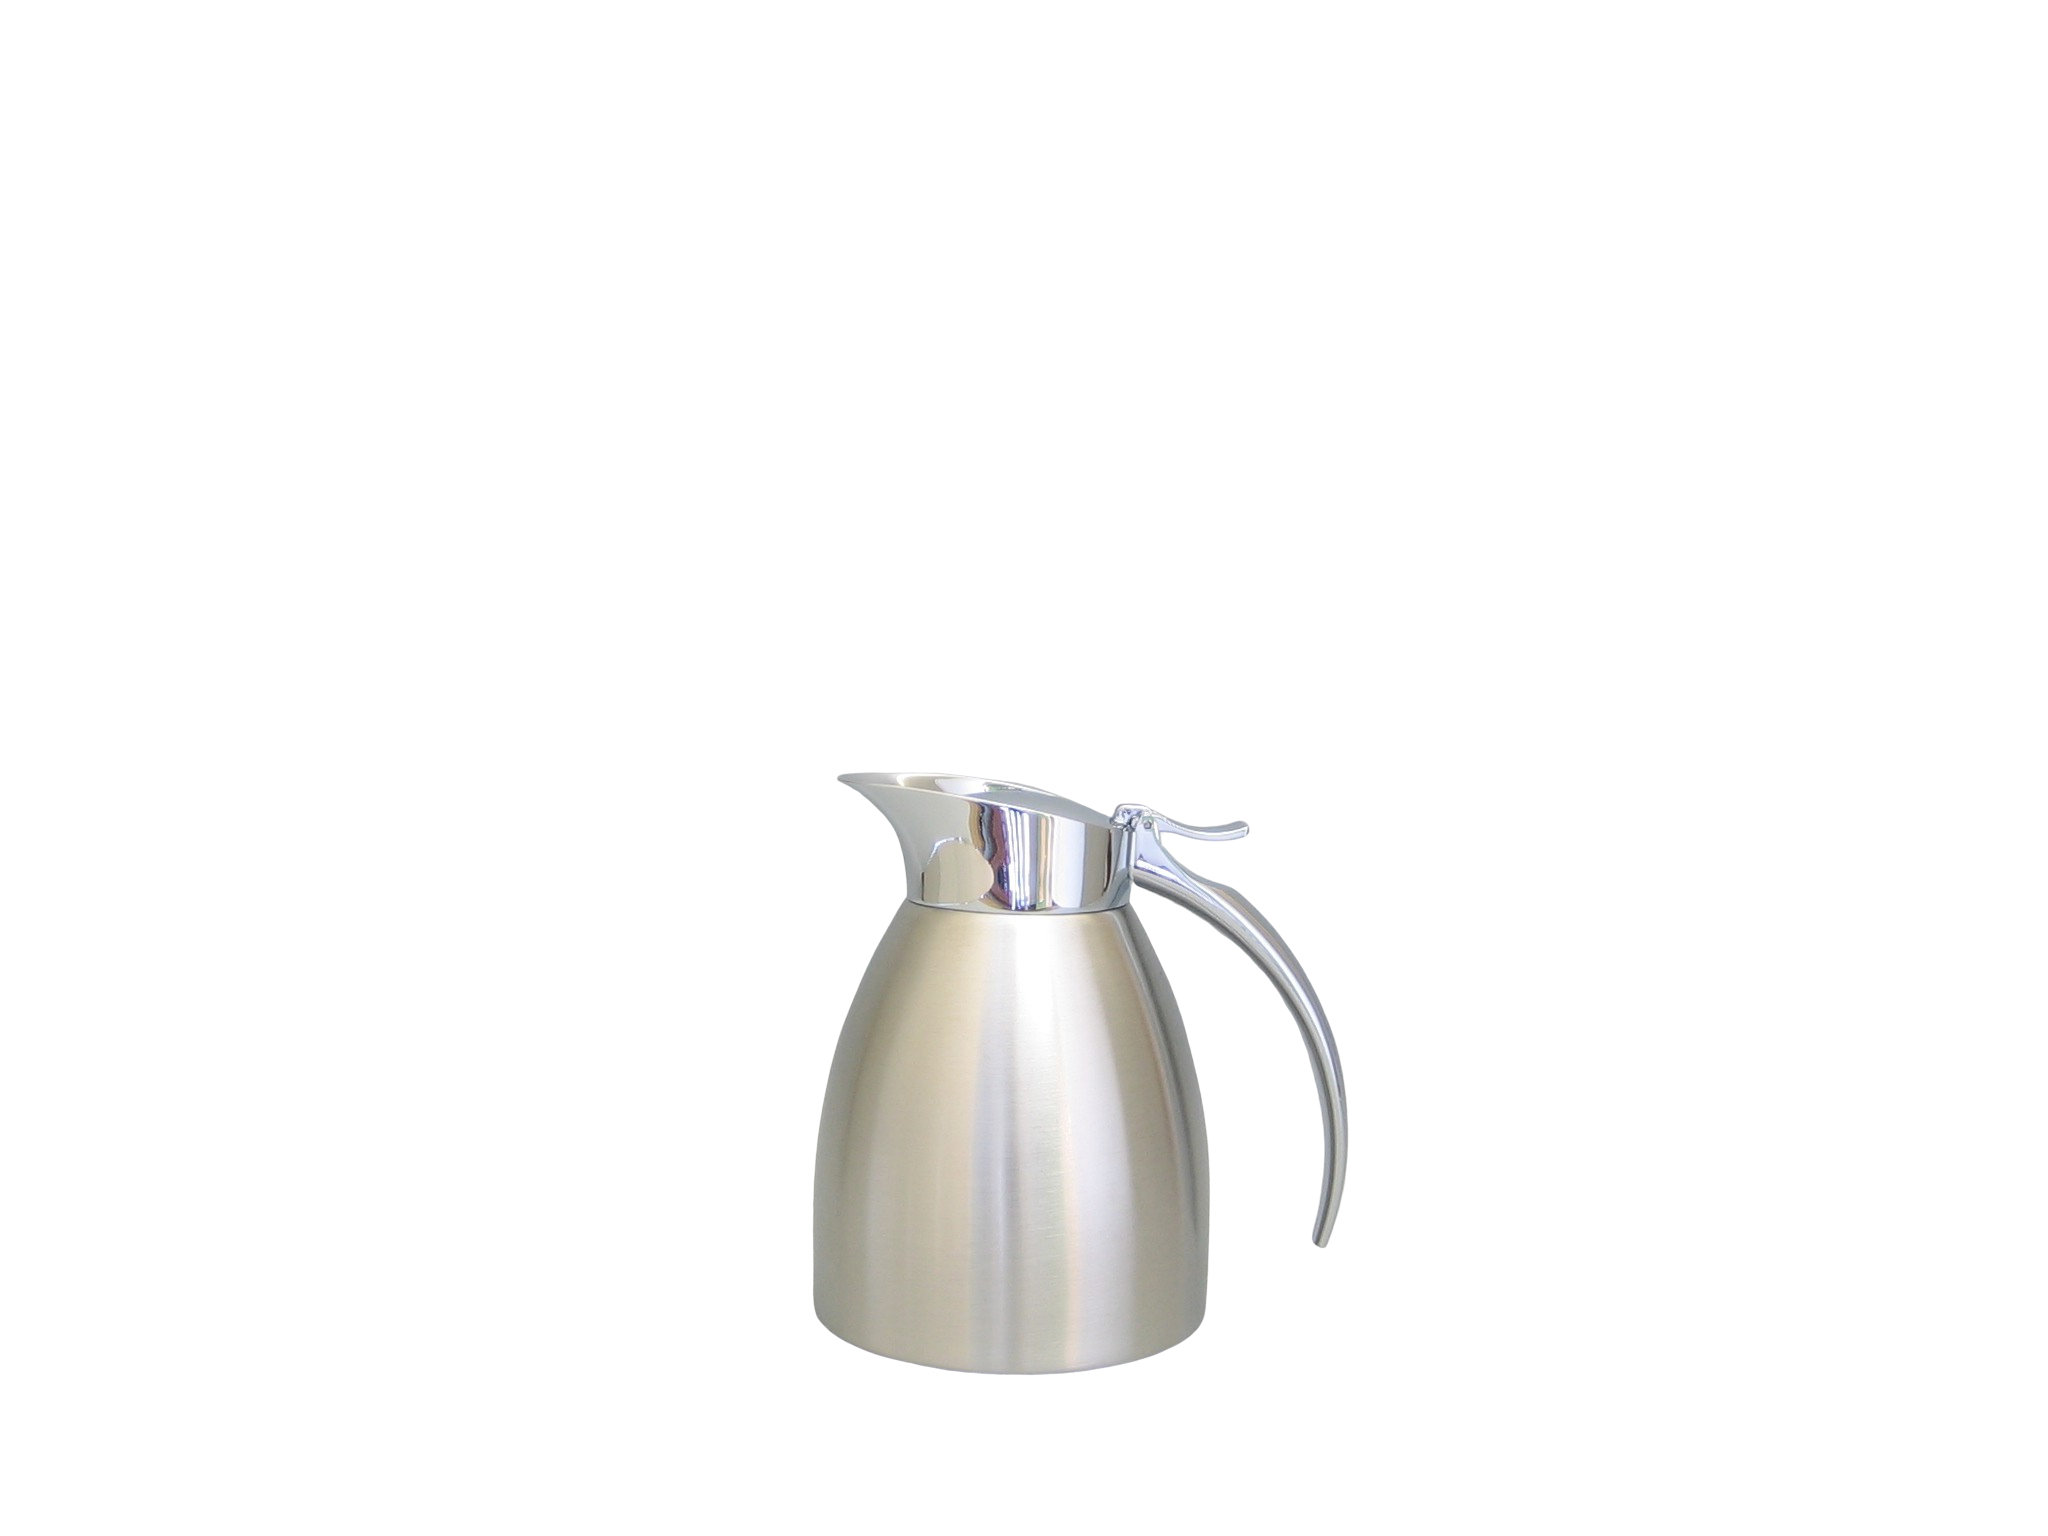 TUNDRA03-900 - Vacuum carafe SS mat finish unbreakable 0.30 L - Isobel